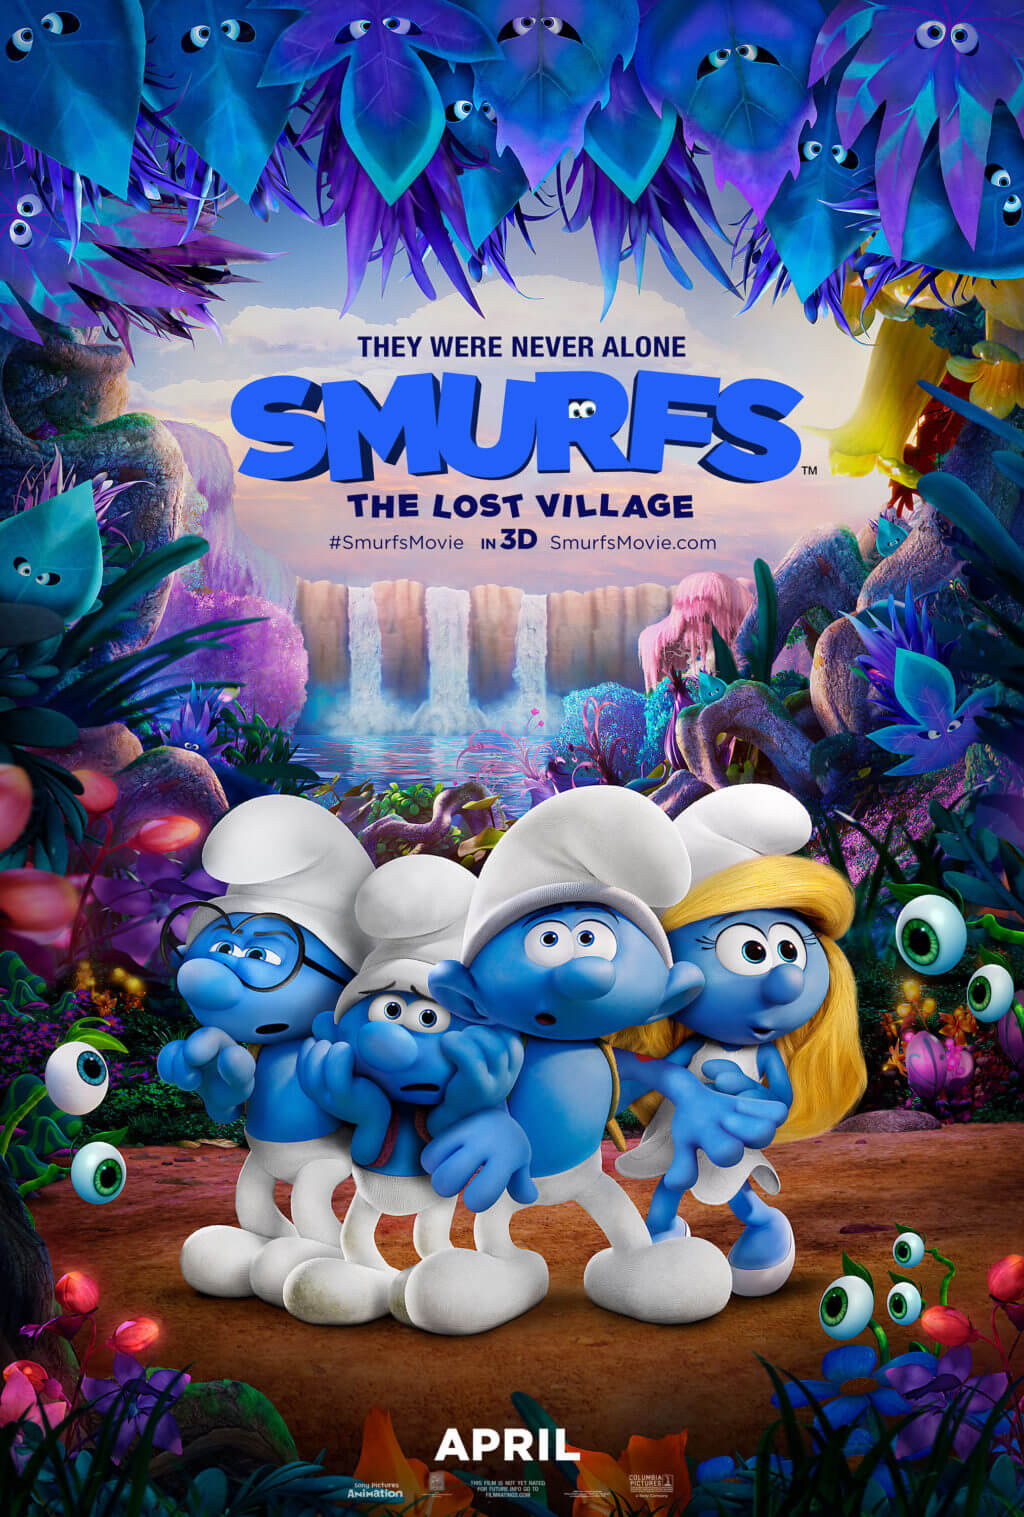 Make some Forbidden Forest Slime for the #SmurfsMovie! #ad #RWM